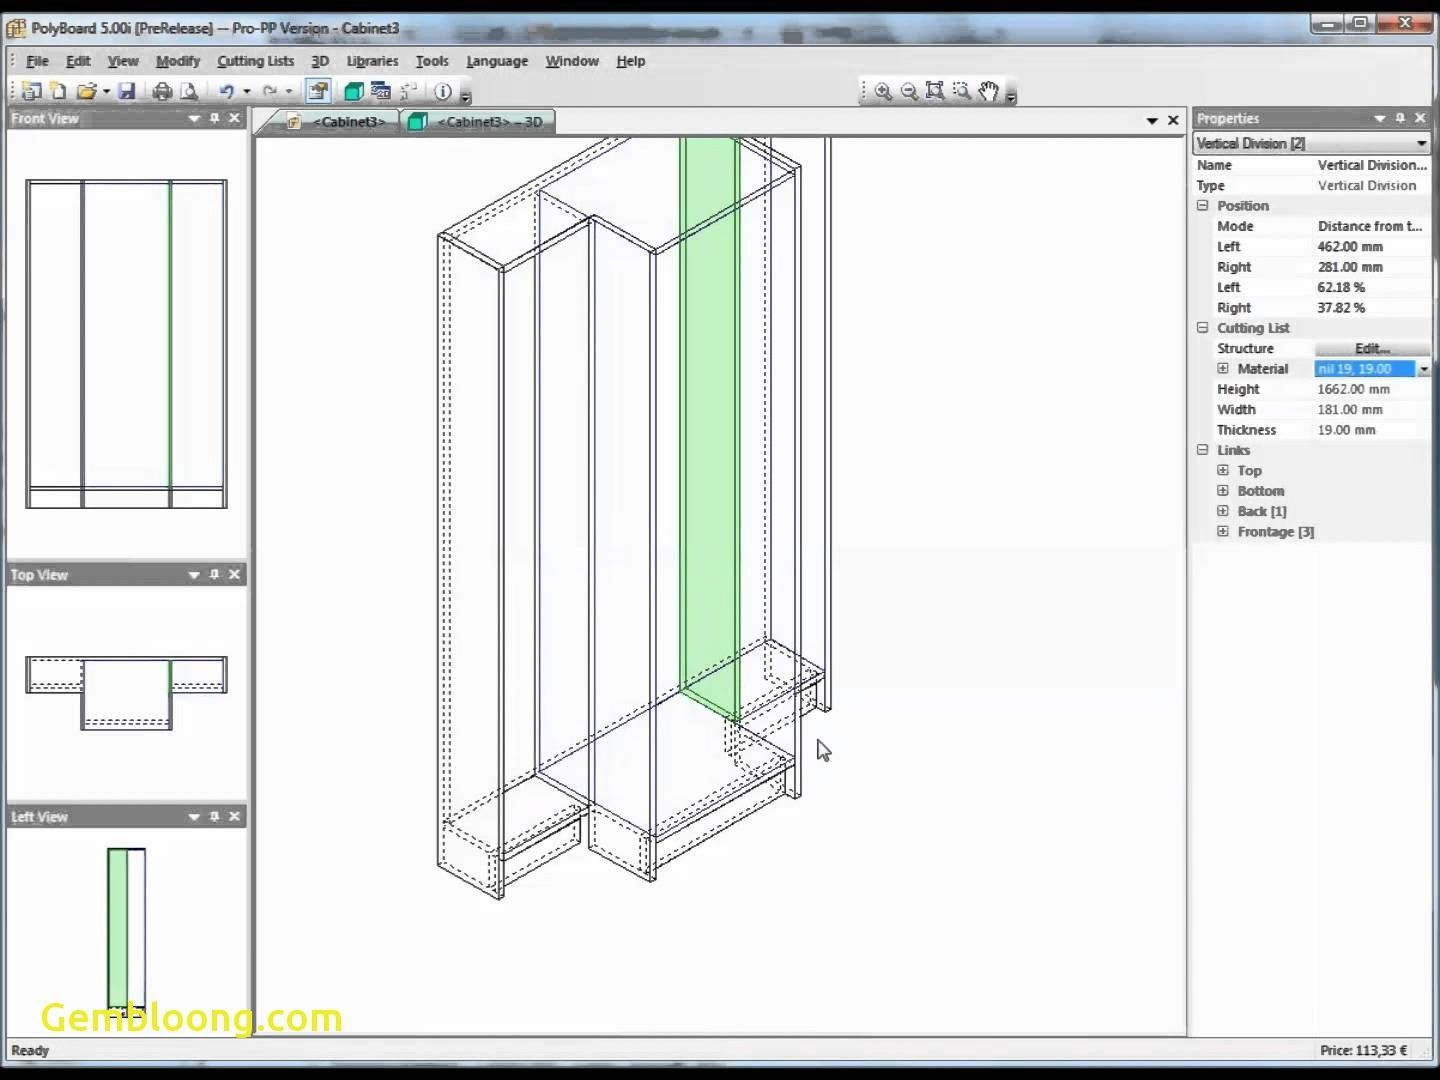 Inspirational Free Furniture Design Software For Pc Allowed For You To My Per Woodworking Plans Software Sketchup Woodworking Plans Woodworking Project Design